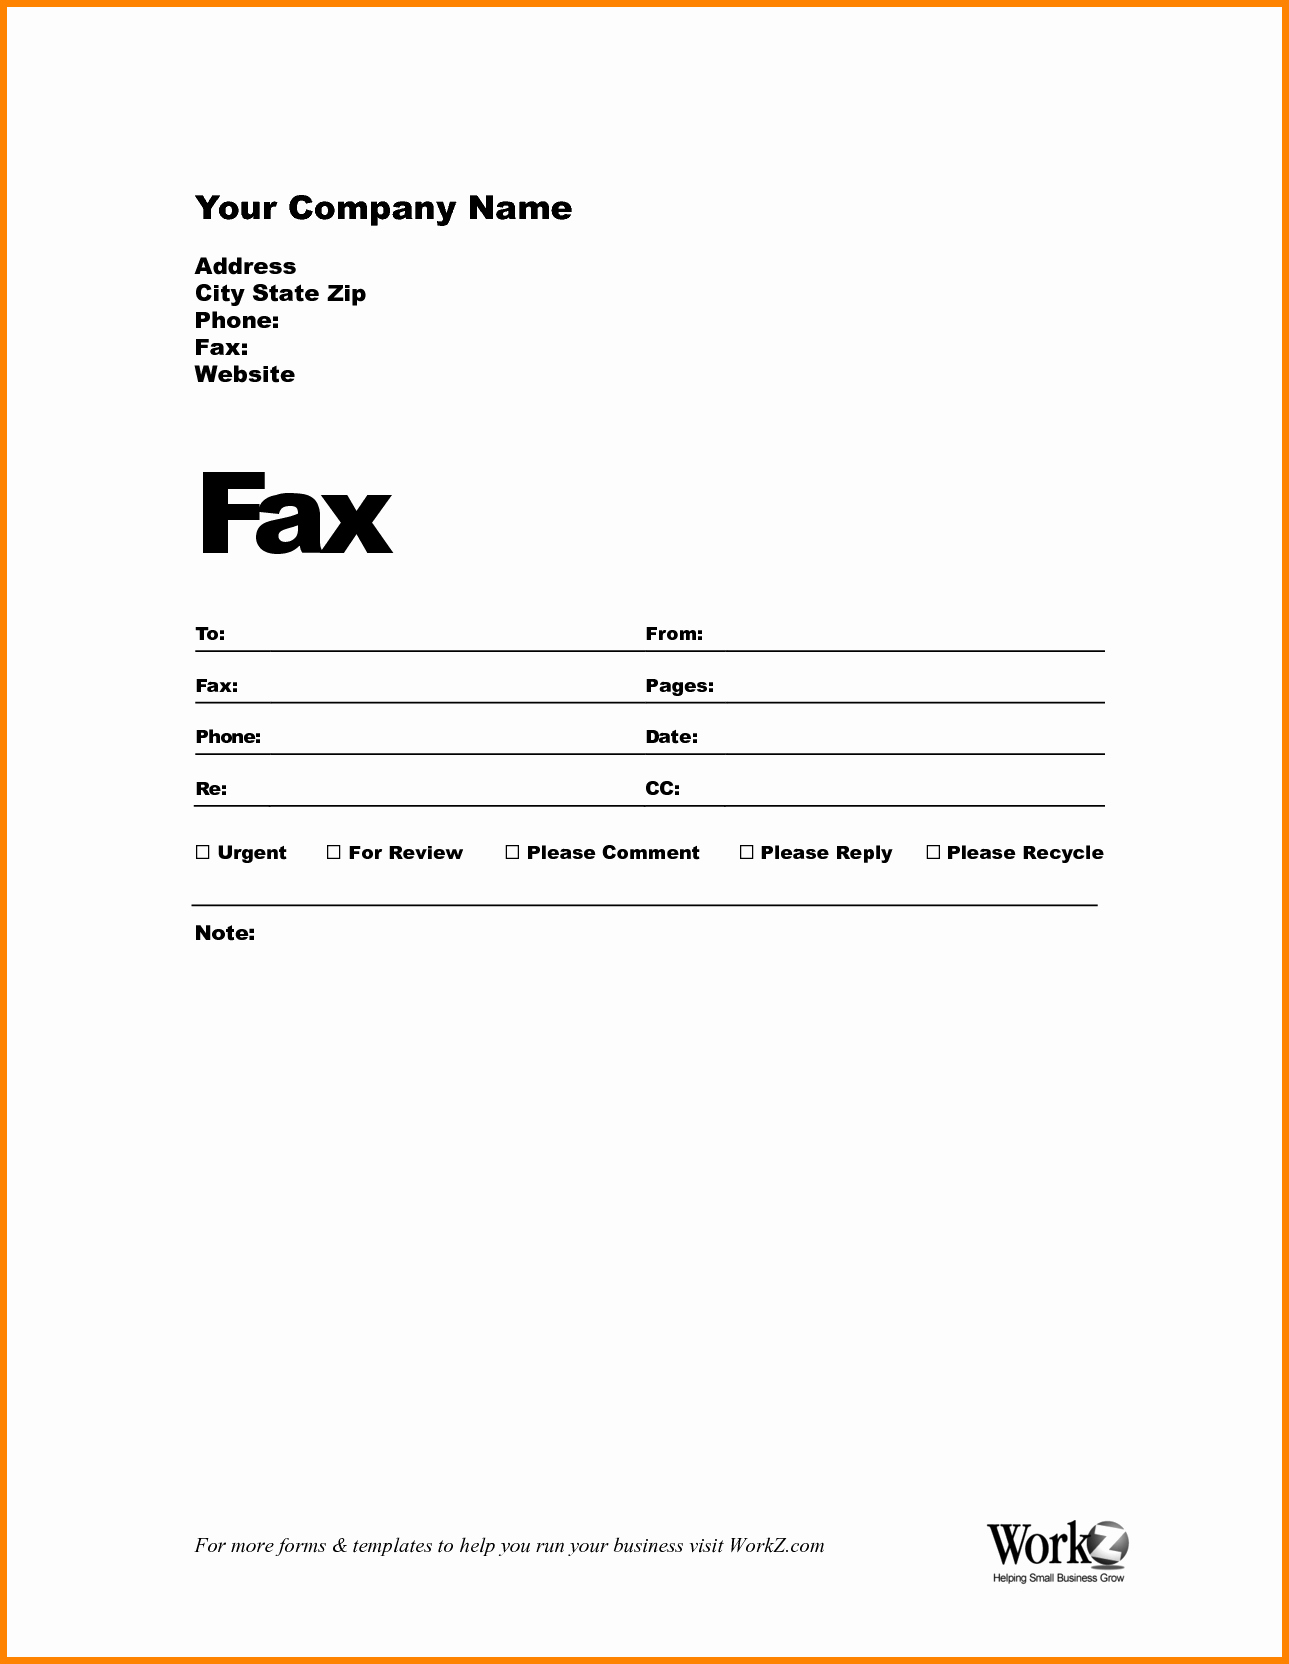 Fax Cover Sheets Microsoft Word Best Of 7 Blank Fax Cover Sheet Template Word Best Ideas Fax